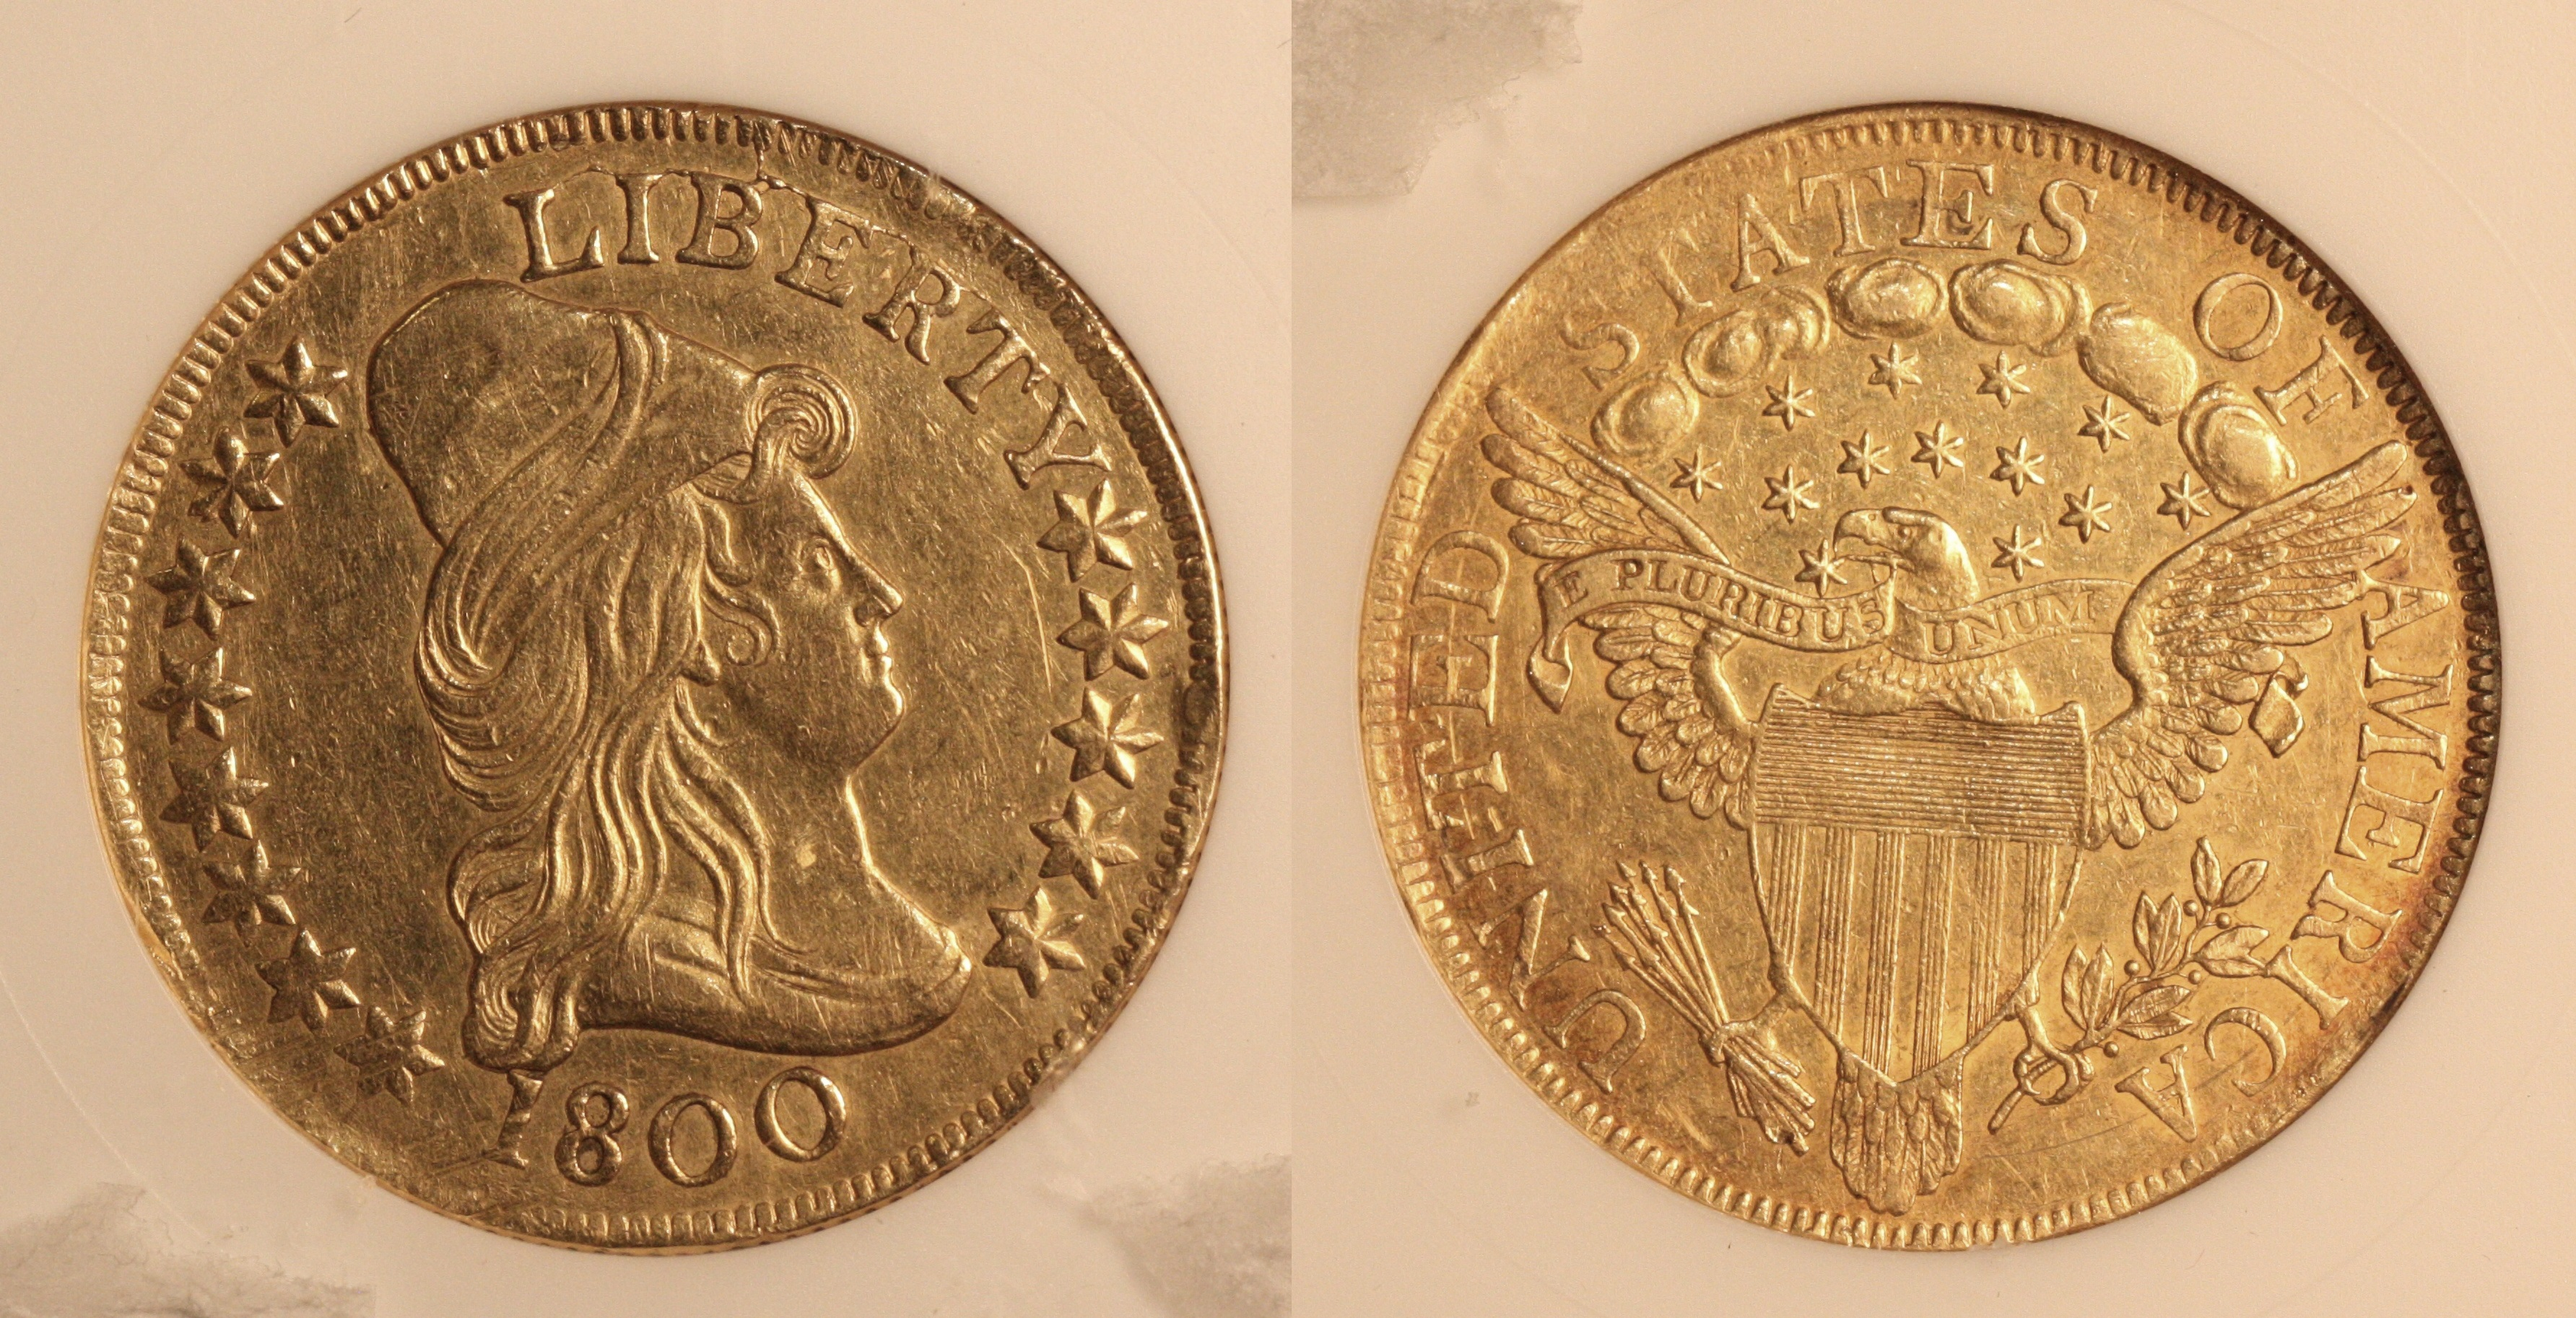 1800 $10 Turban Head Capped Bust Right Gold Eagle ANACS AU Details camera